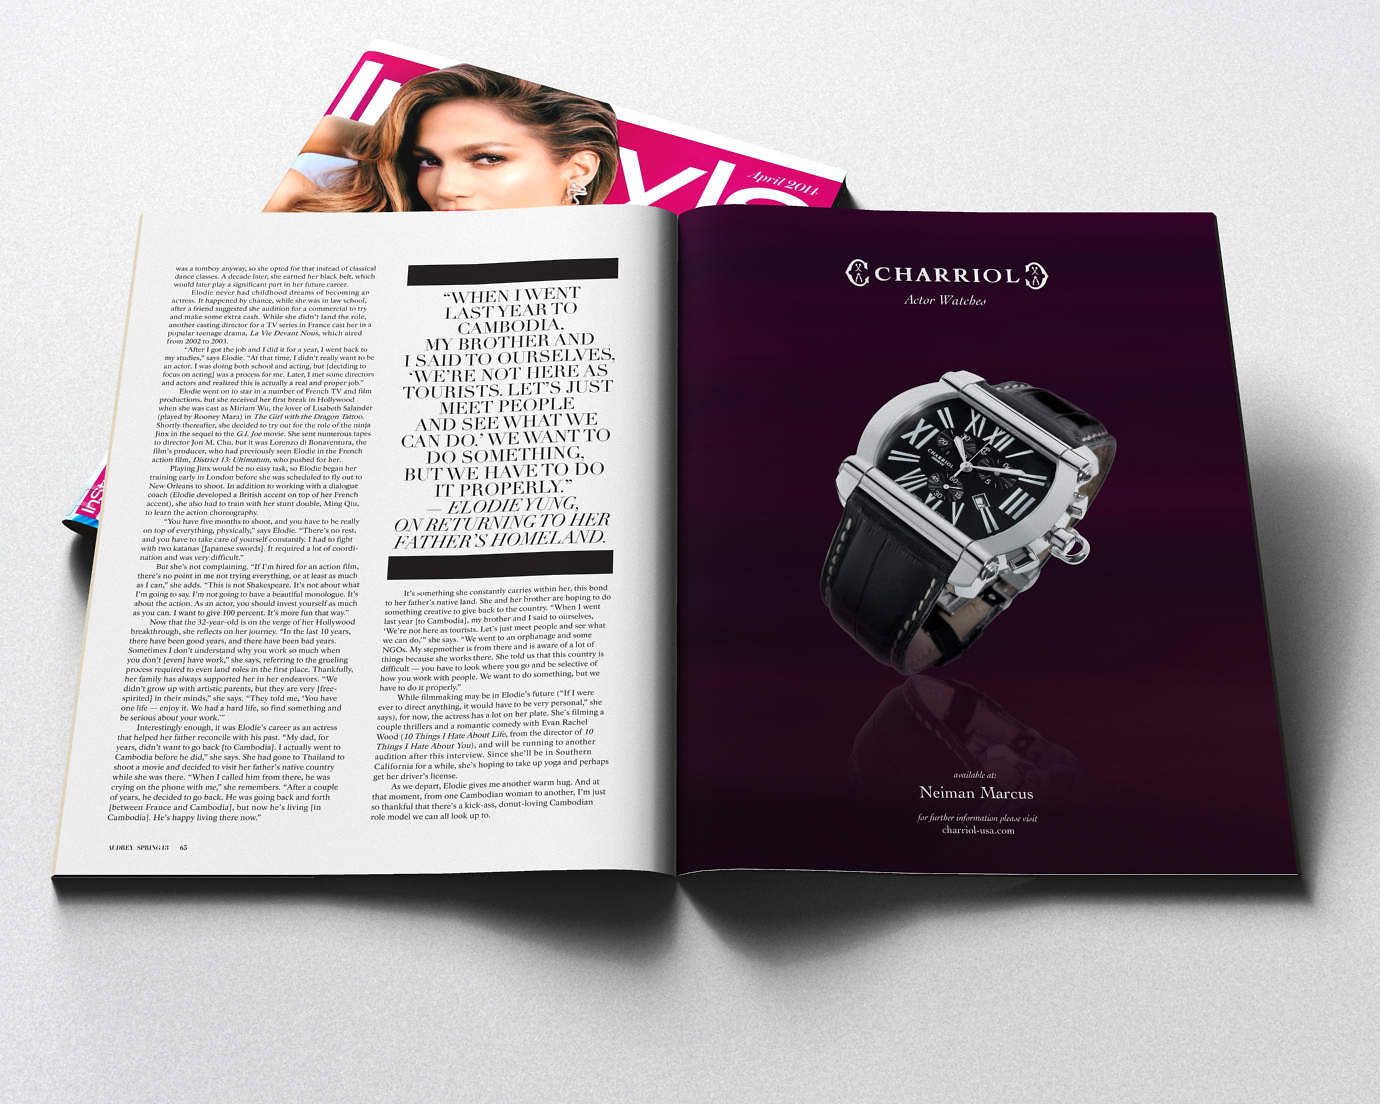 magazine-ad-layout-design-concept-still